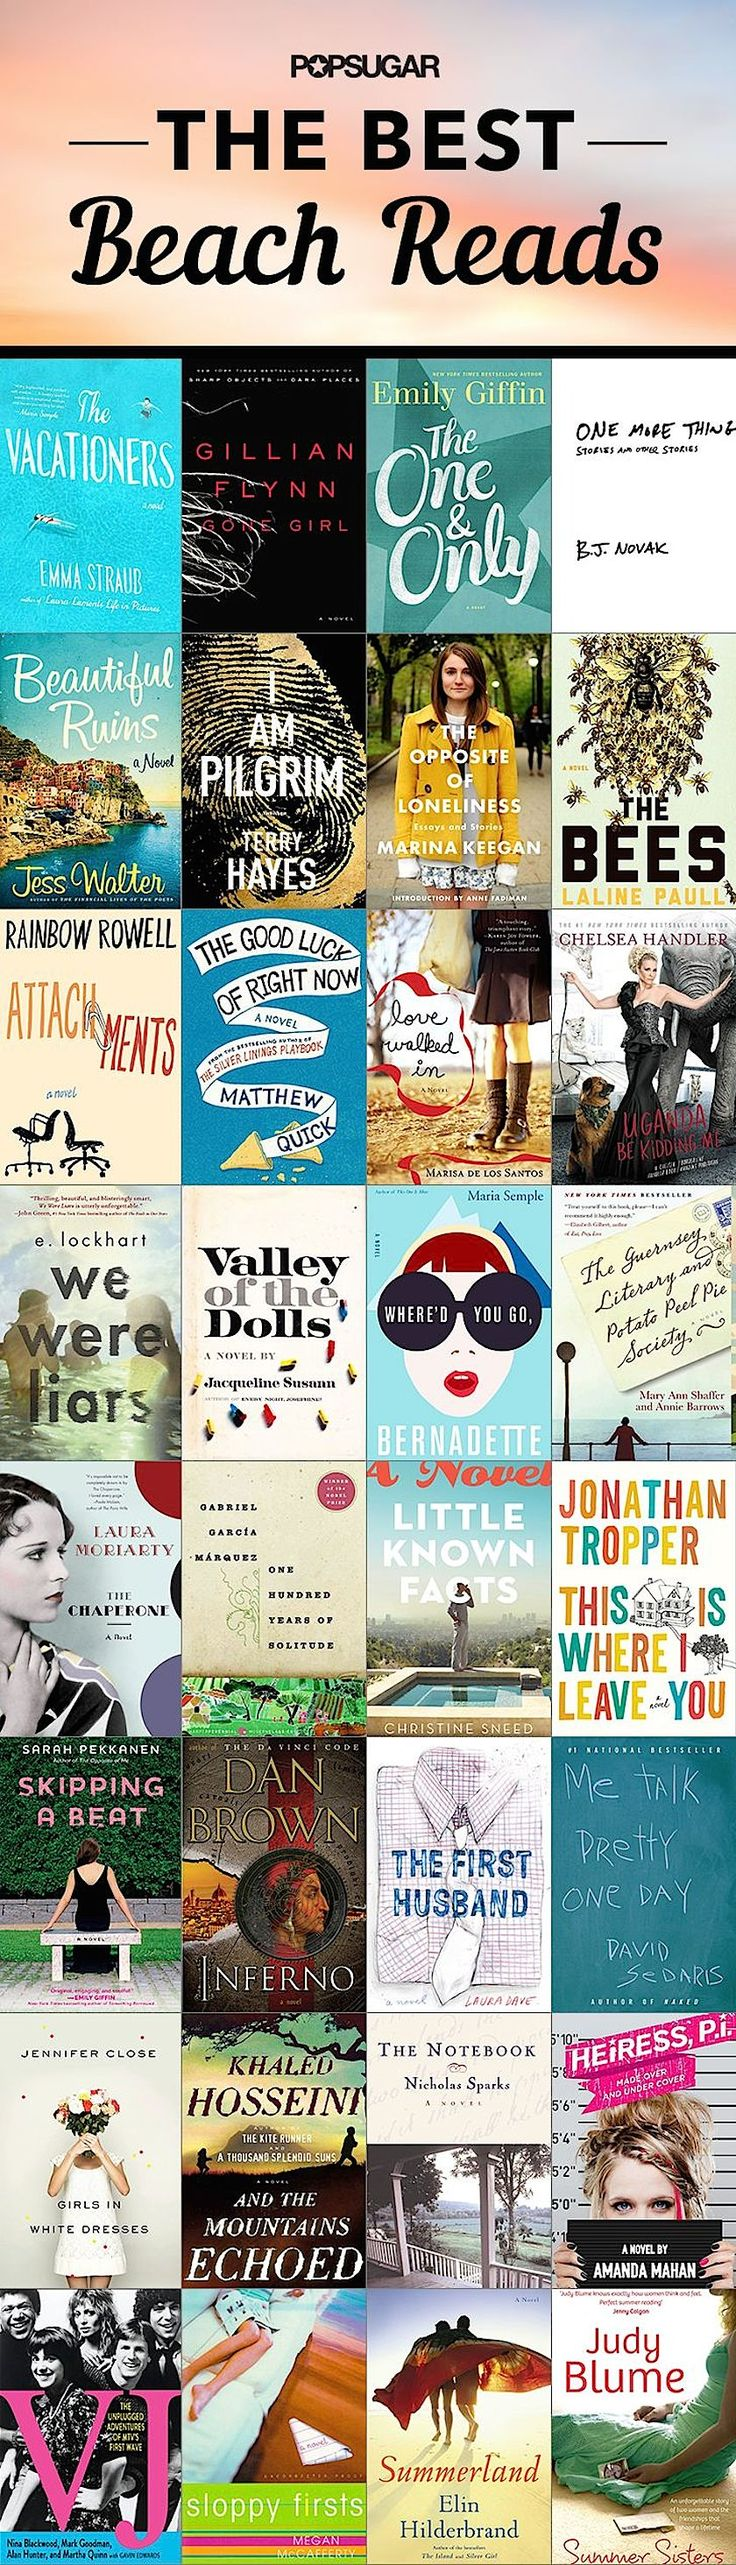 Popsugar has made a list of 2014 beach books for women. It's a collection of hot bestsellers in mystery, romance, and modern fiction, mixed with classic evergreens. #beachreads